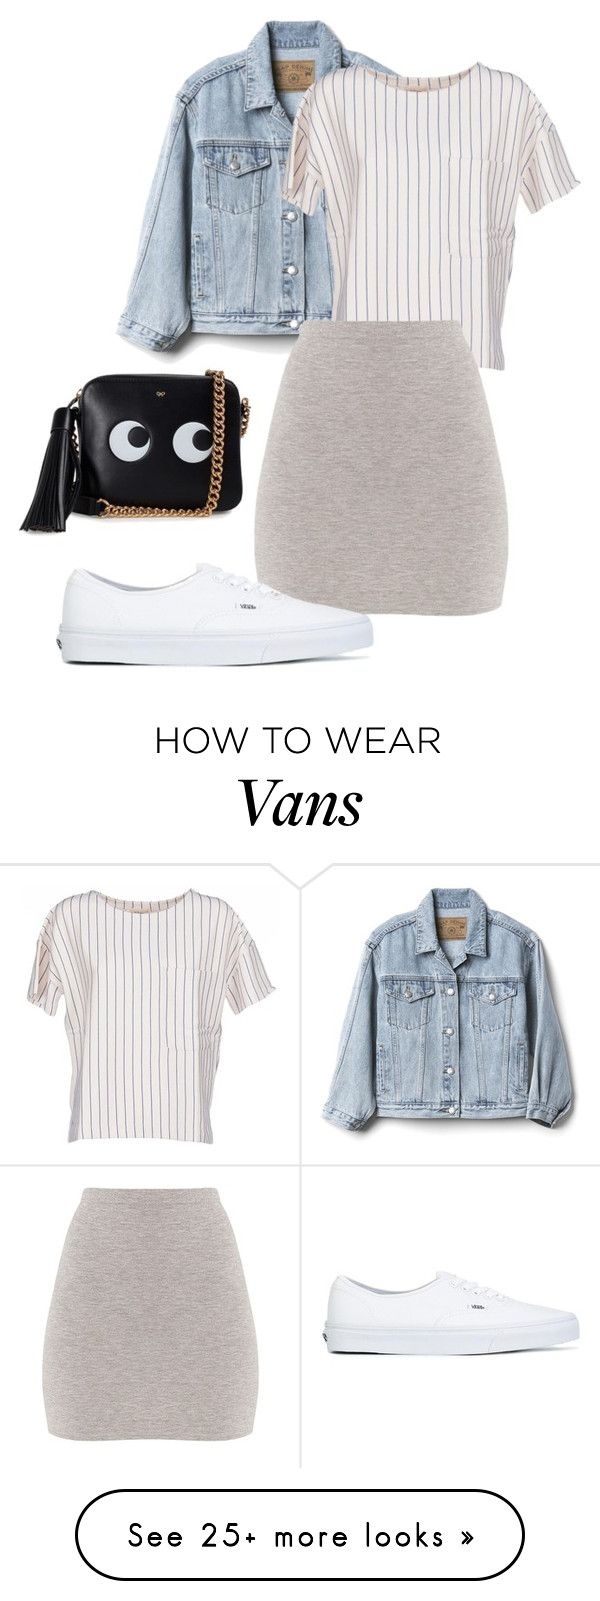 """Basic & Cute ☀️"" by ghuus15 on Polyvore featuring Gap, BELLEROSE, BasicGrey, Vans and Anya Hindmarch"